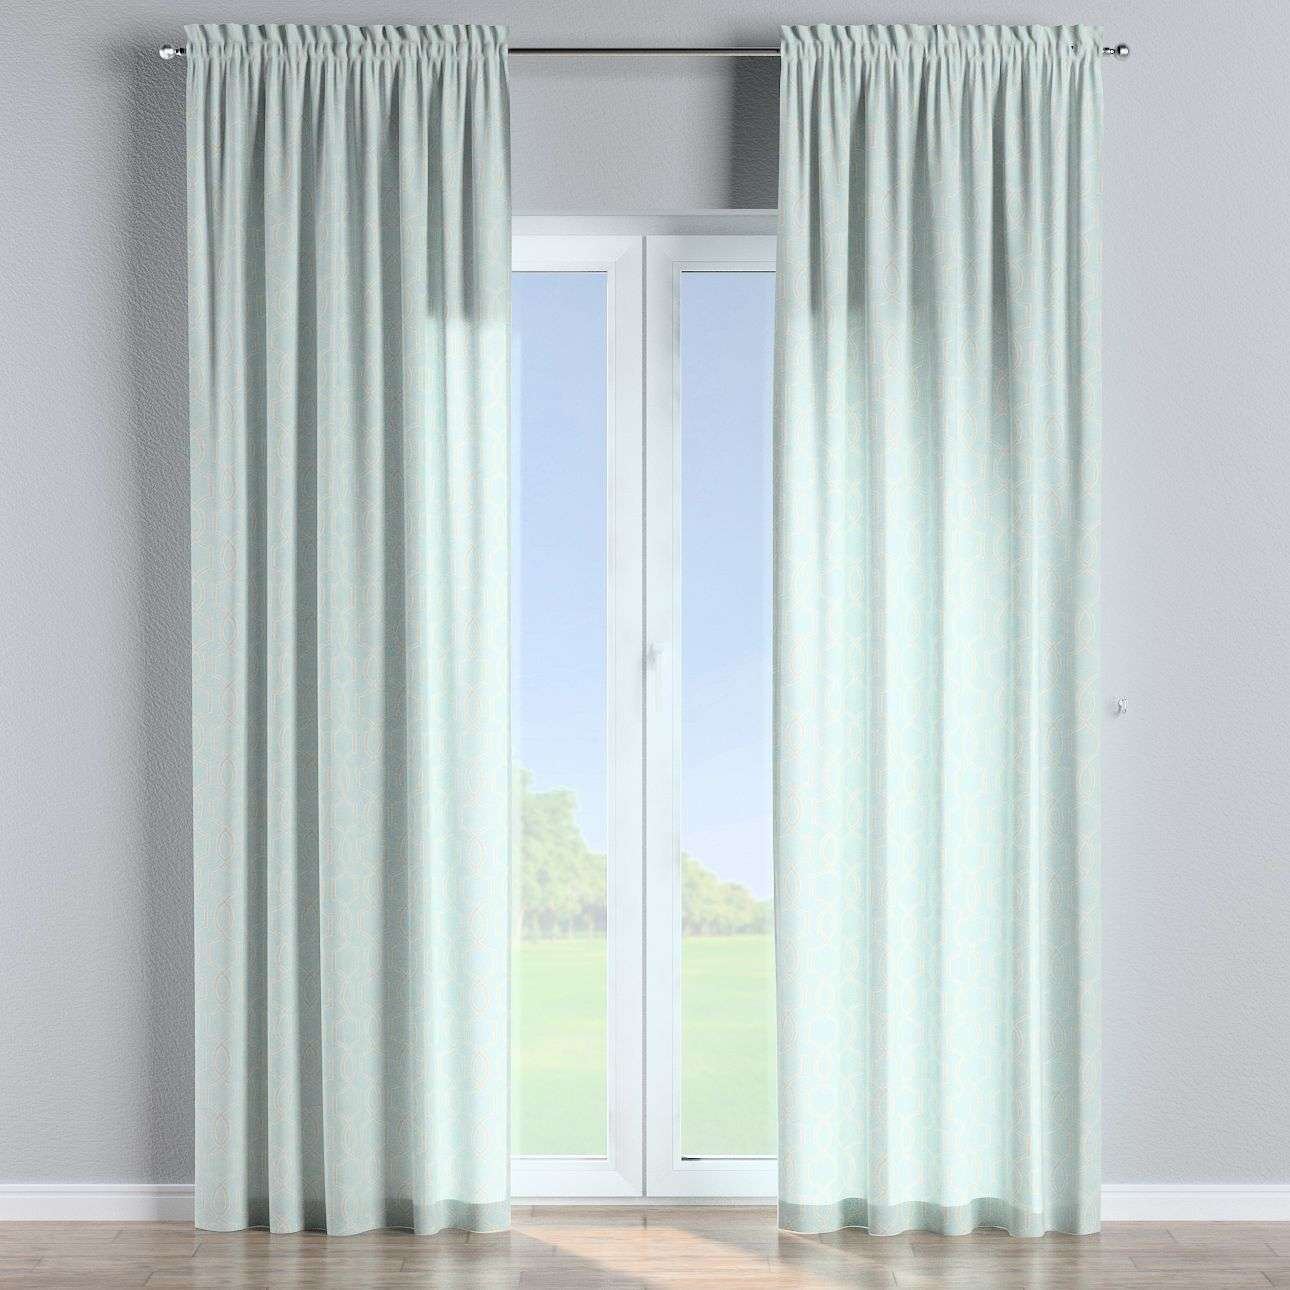 Slot and frill curtains in collection Comics/Geometrical, fabric: 141-24